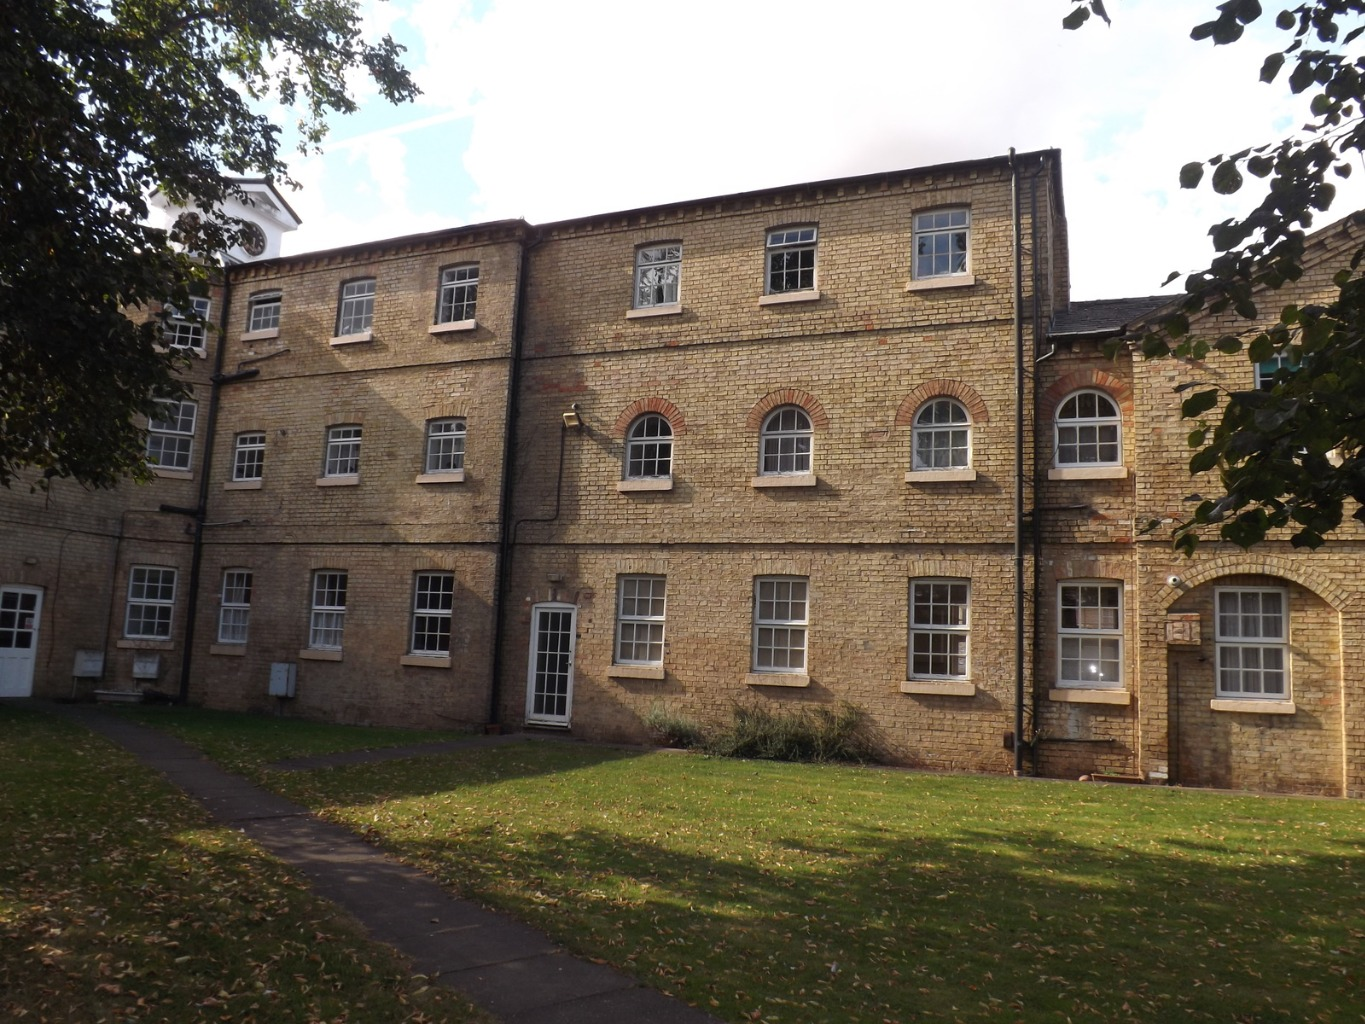 1 bed flat for sale in The White House, St. Neots Road, St. Neots, PE19